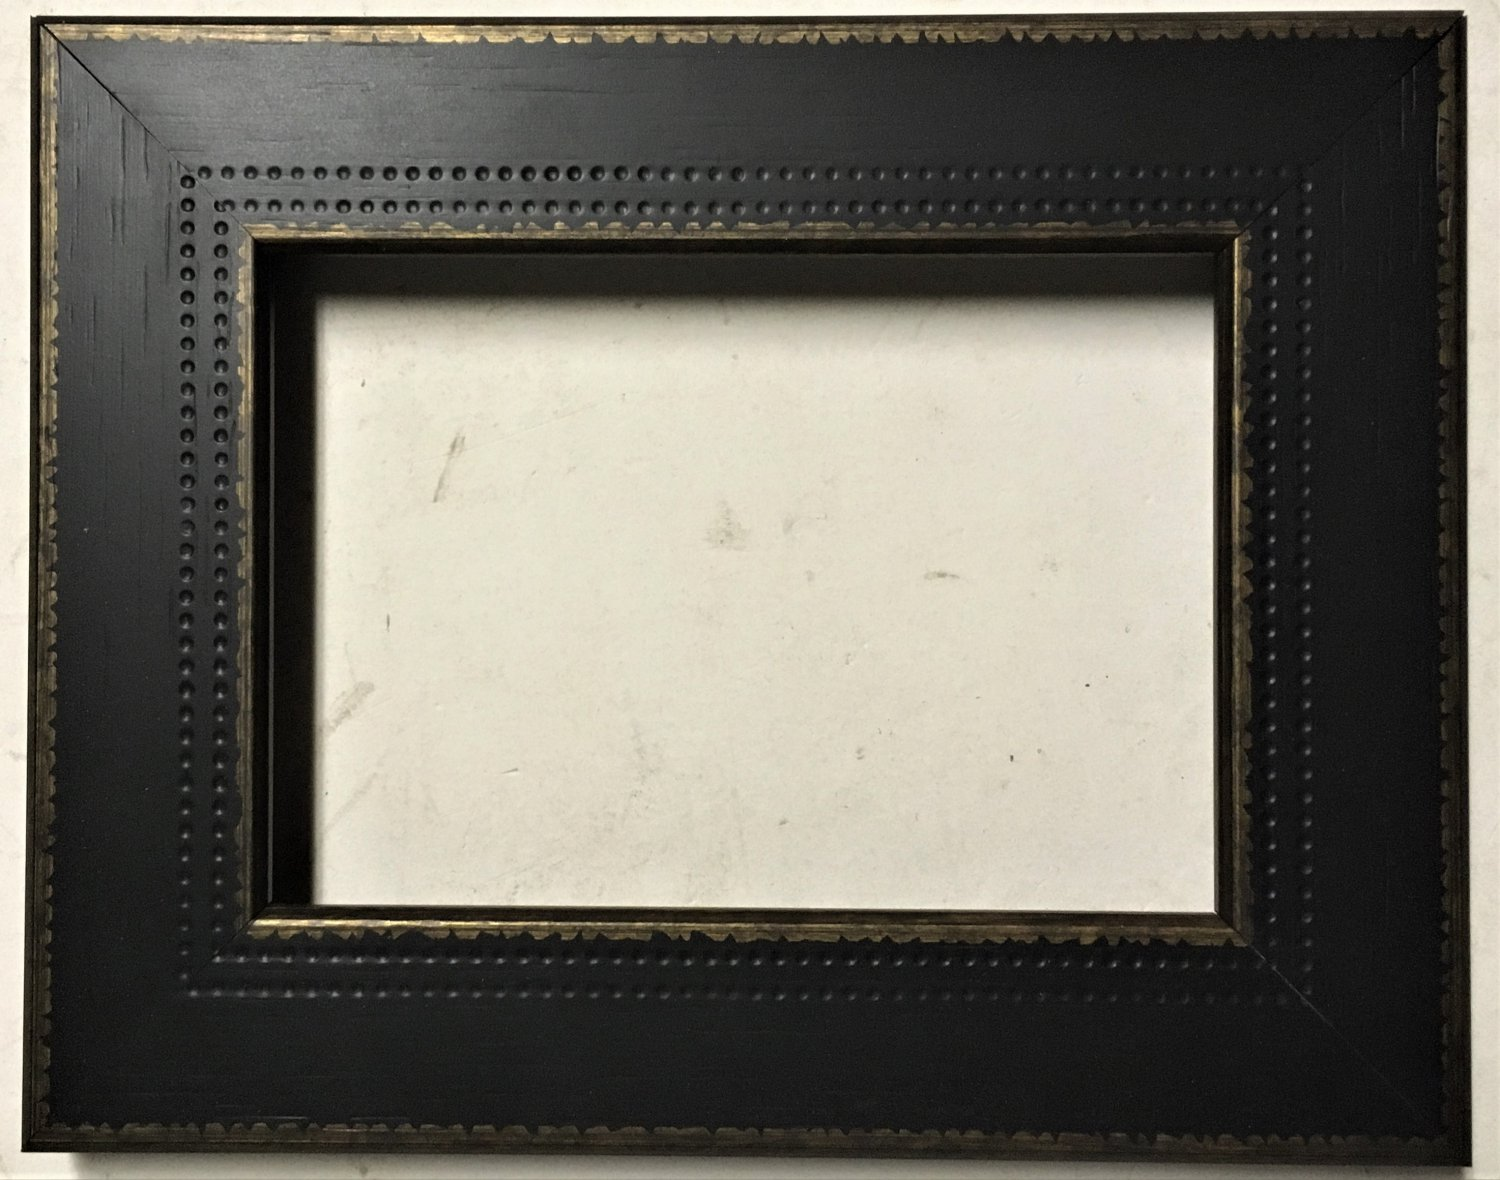 "8 x 10 1-3/4"" Black w/Gold Picture Frame"